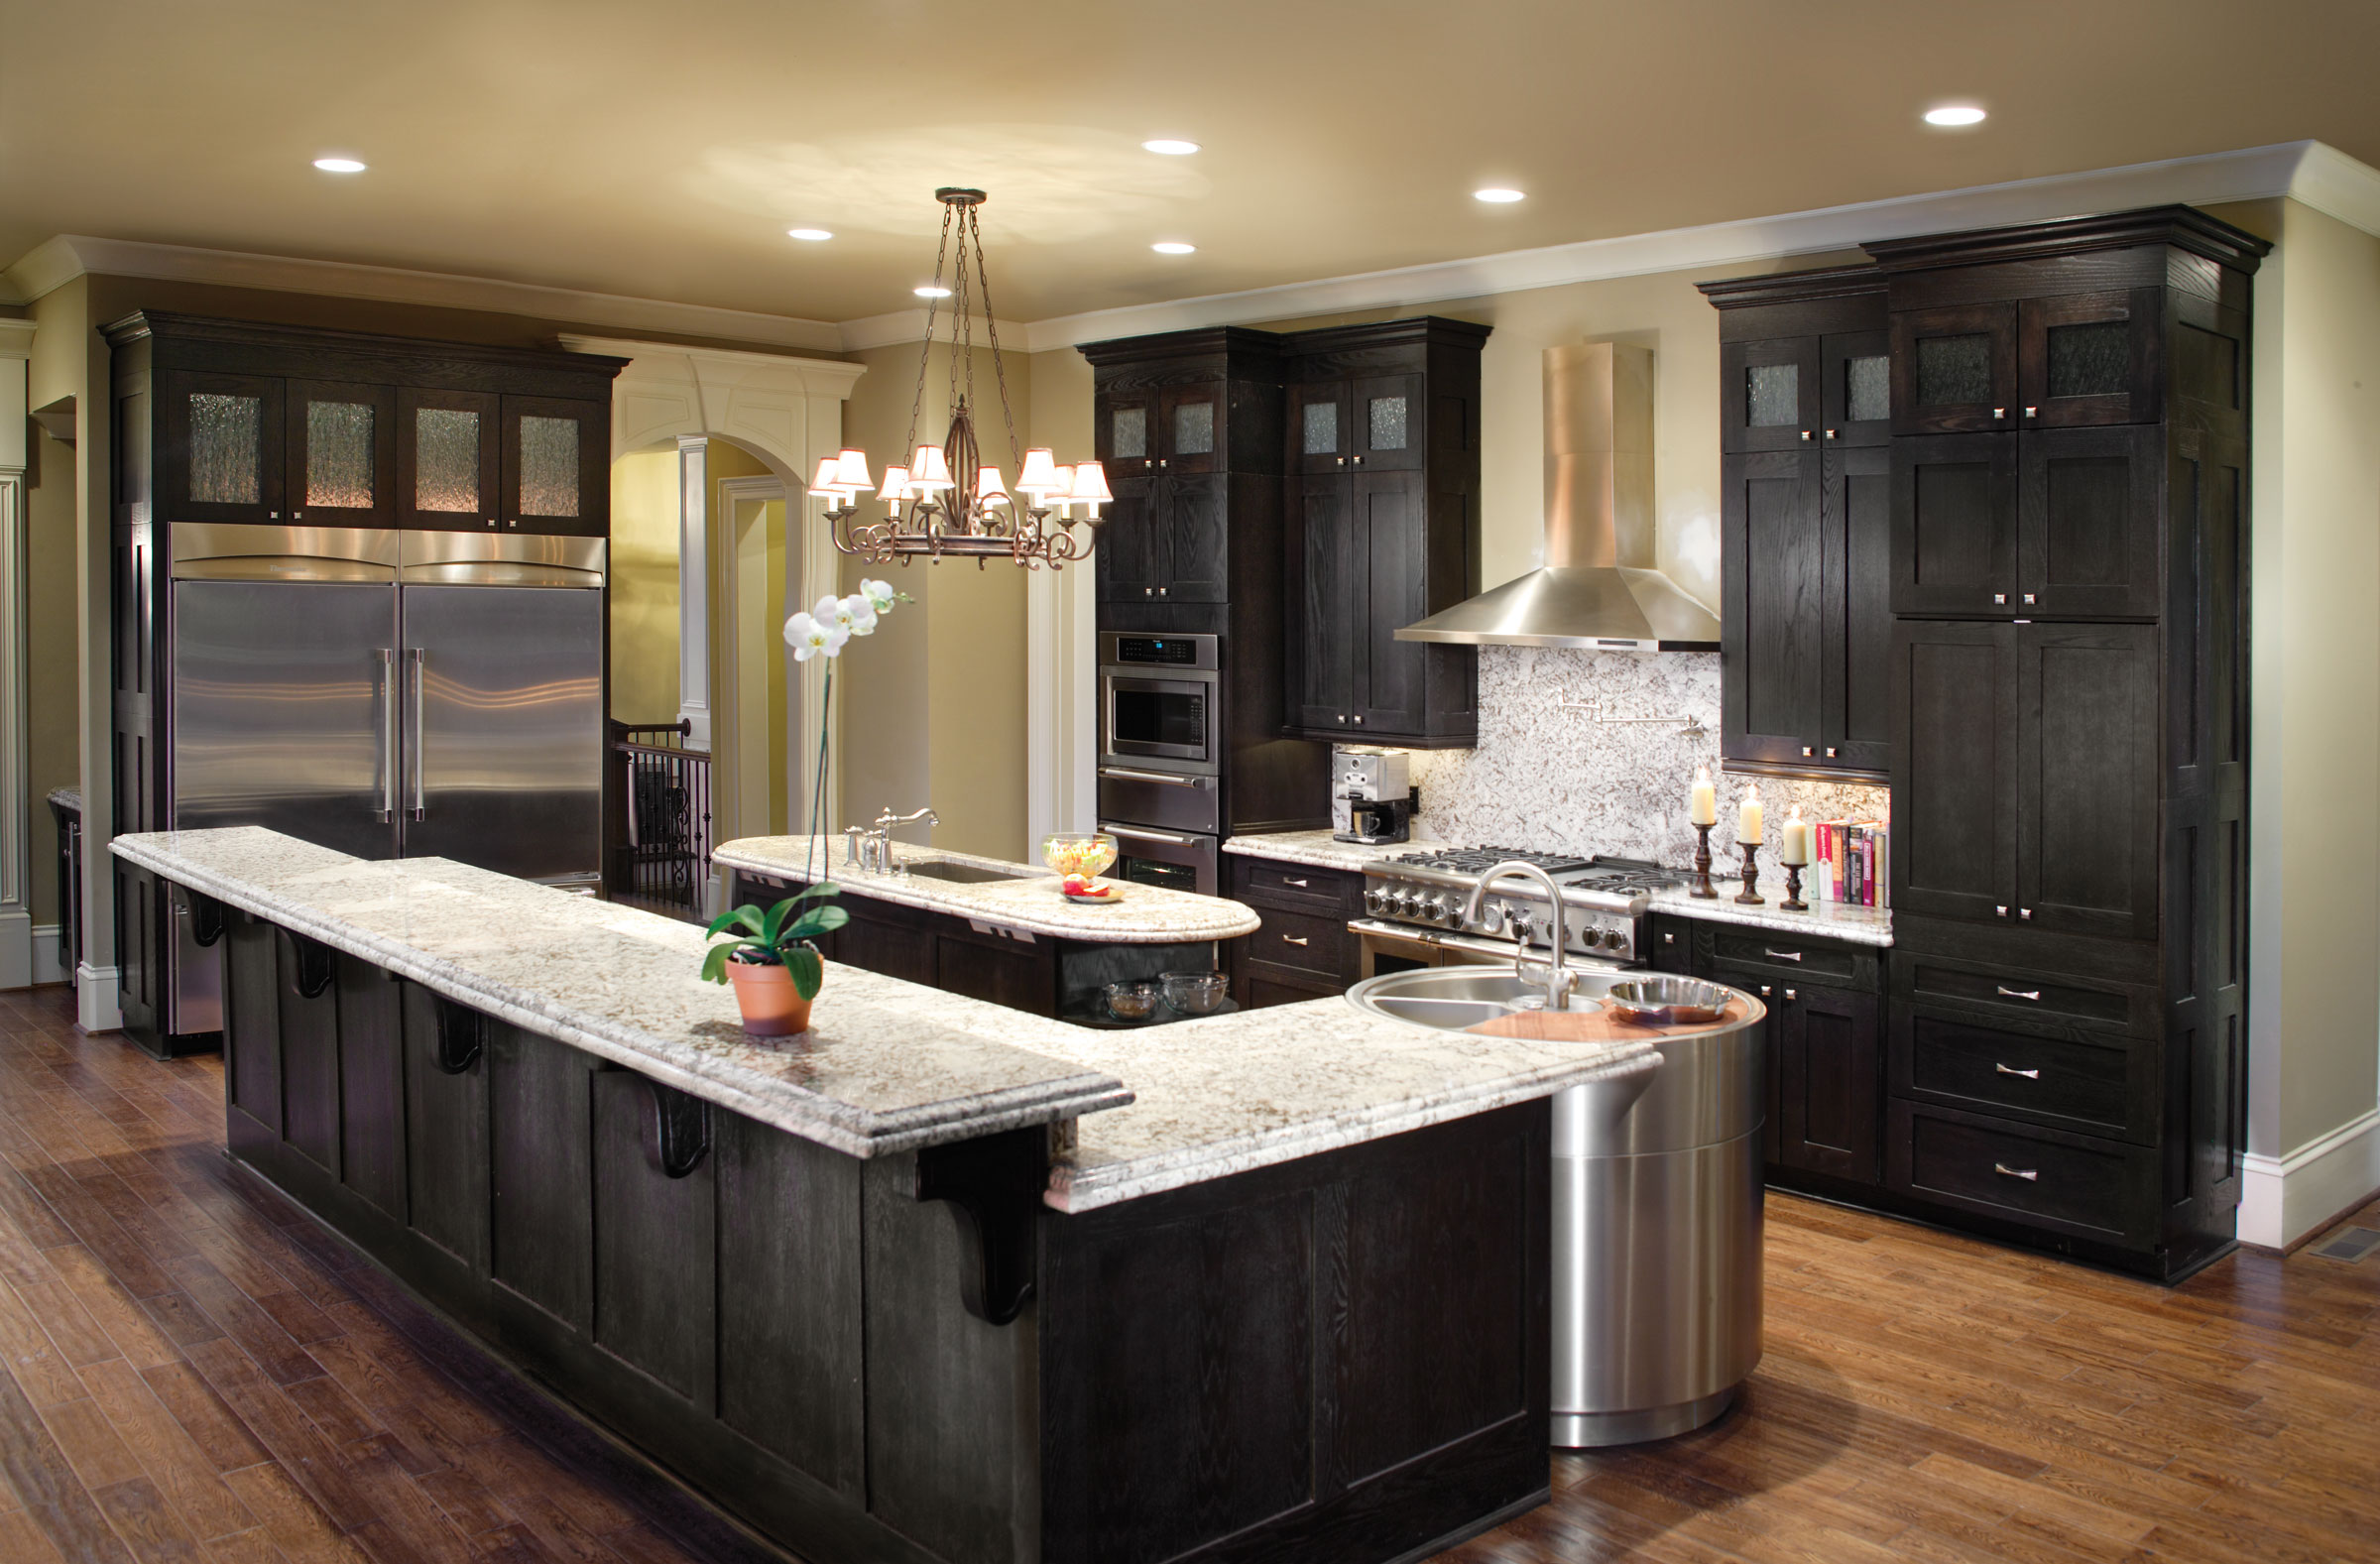 Custom bathroom kitchen cabinets phoenix cabinets by design Kitchen and bath design center near me